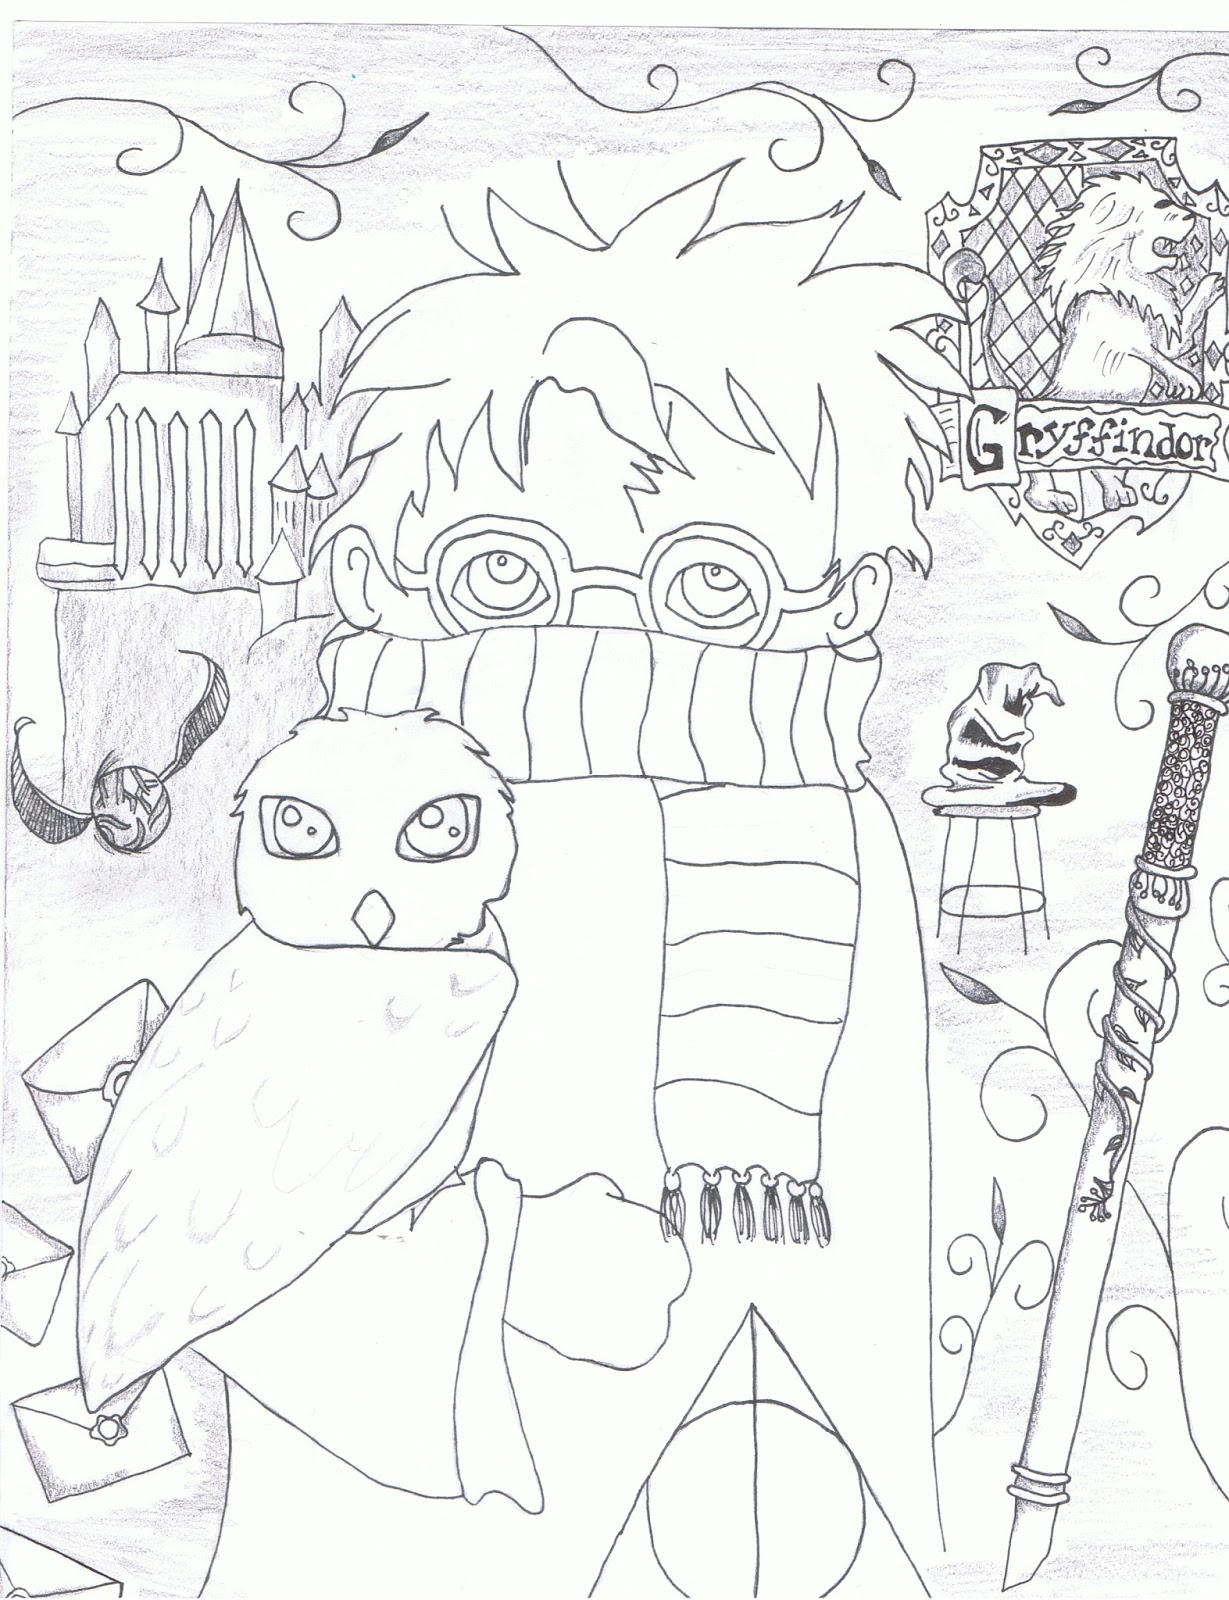 1229x1600 Readdrawlove Drawing A Harry Potter Collage